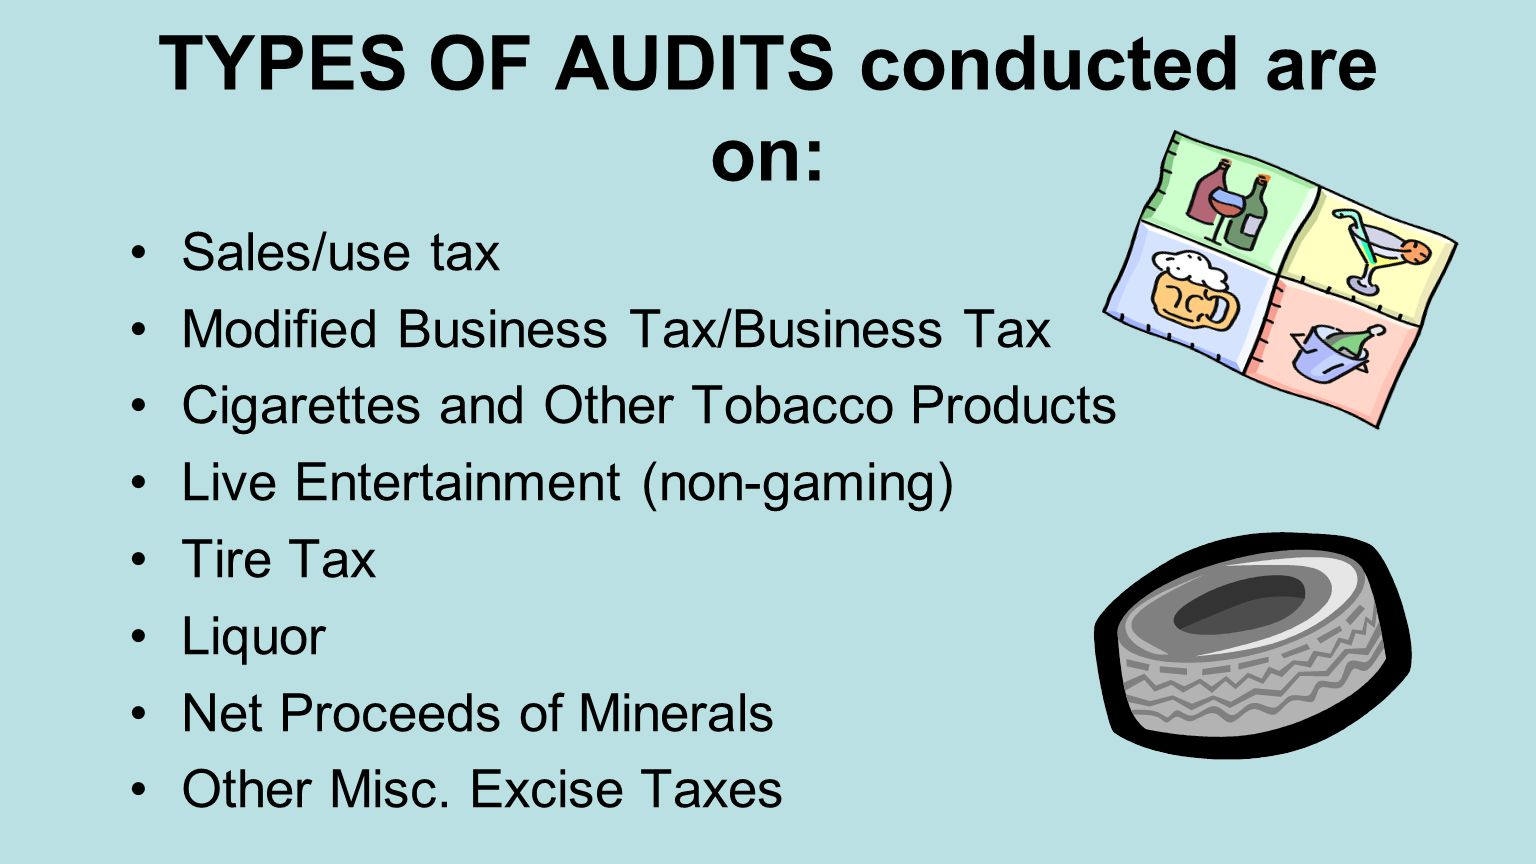 TYPES OF AUDITS conducted are on: Sales/use tax Modified Business Tax/Business Tax Cigarettes and Other Tobacco Products Live Entertainment (non-gaming) Tire Tax Liquor Net Proceeds of Minerals Other Misc.